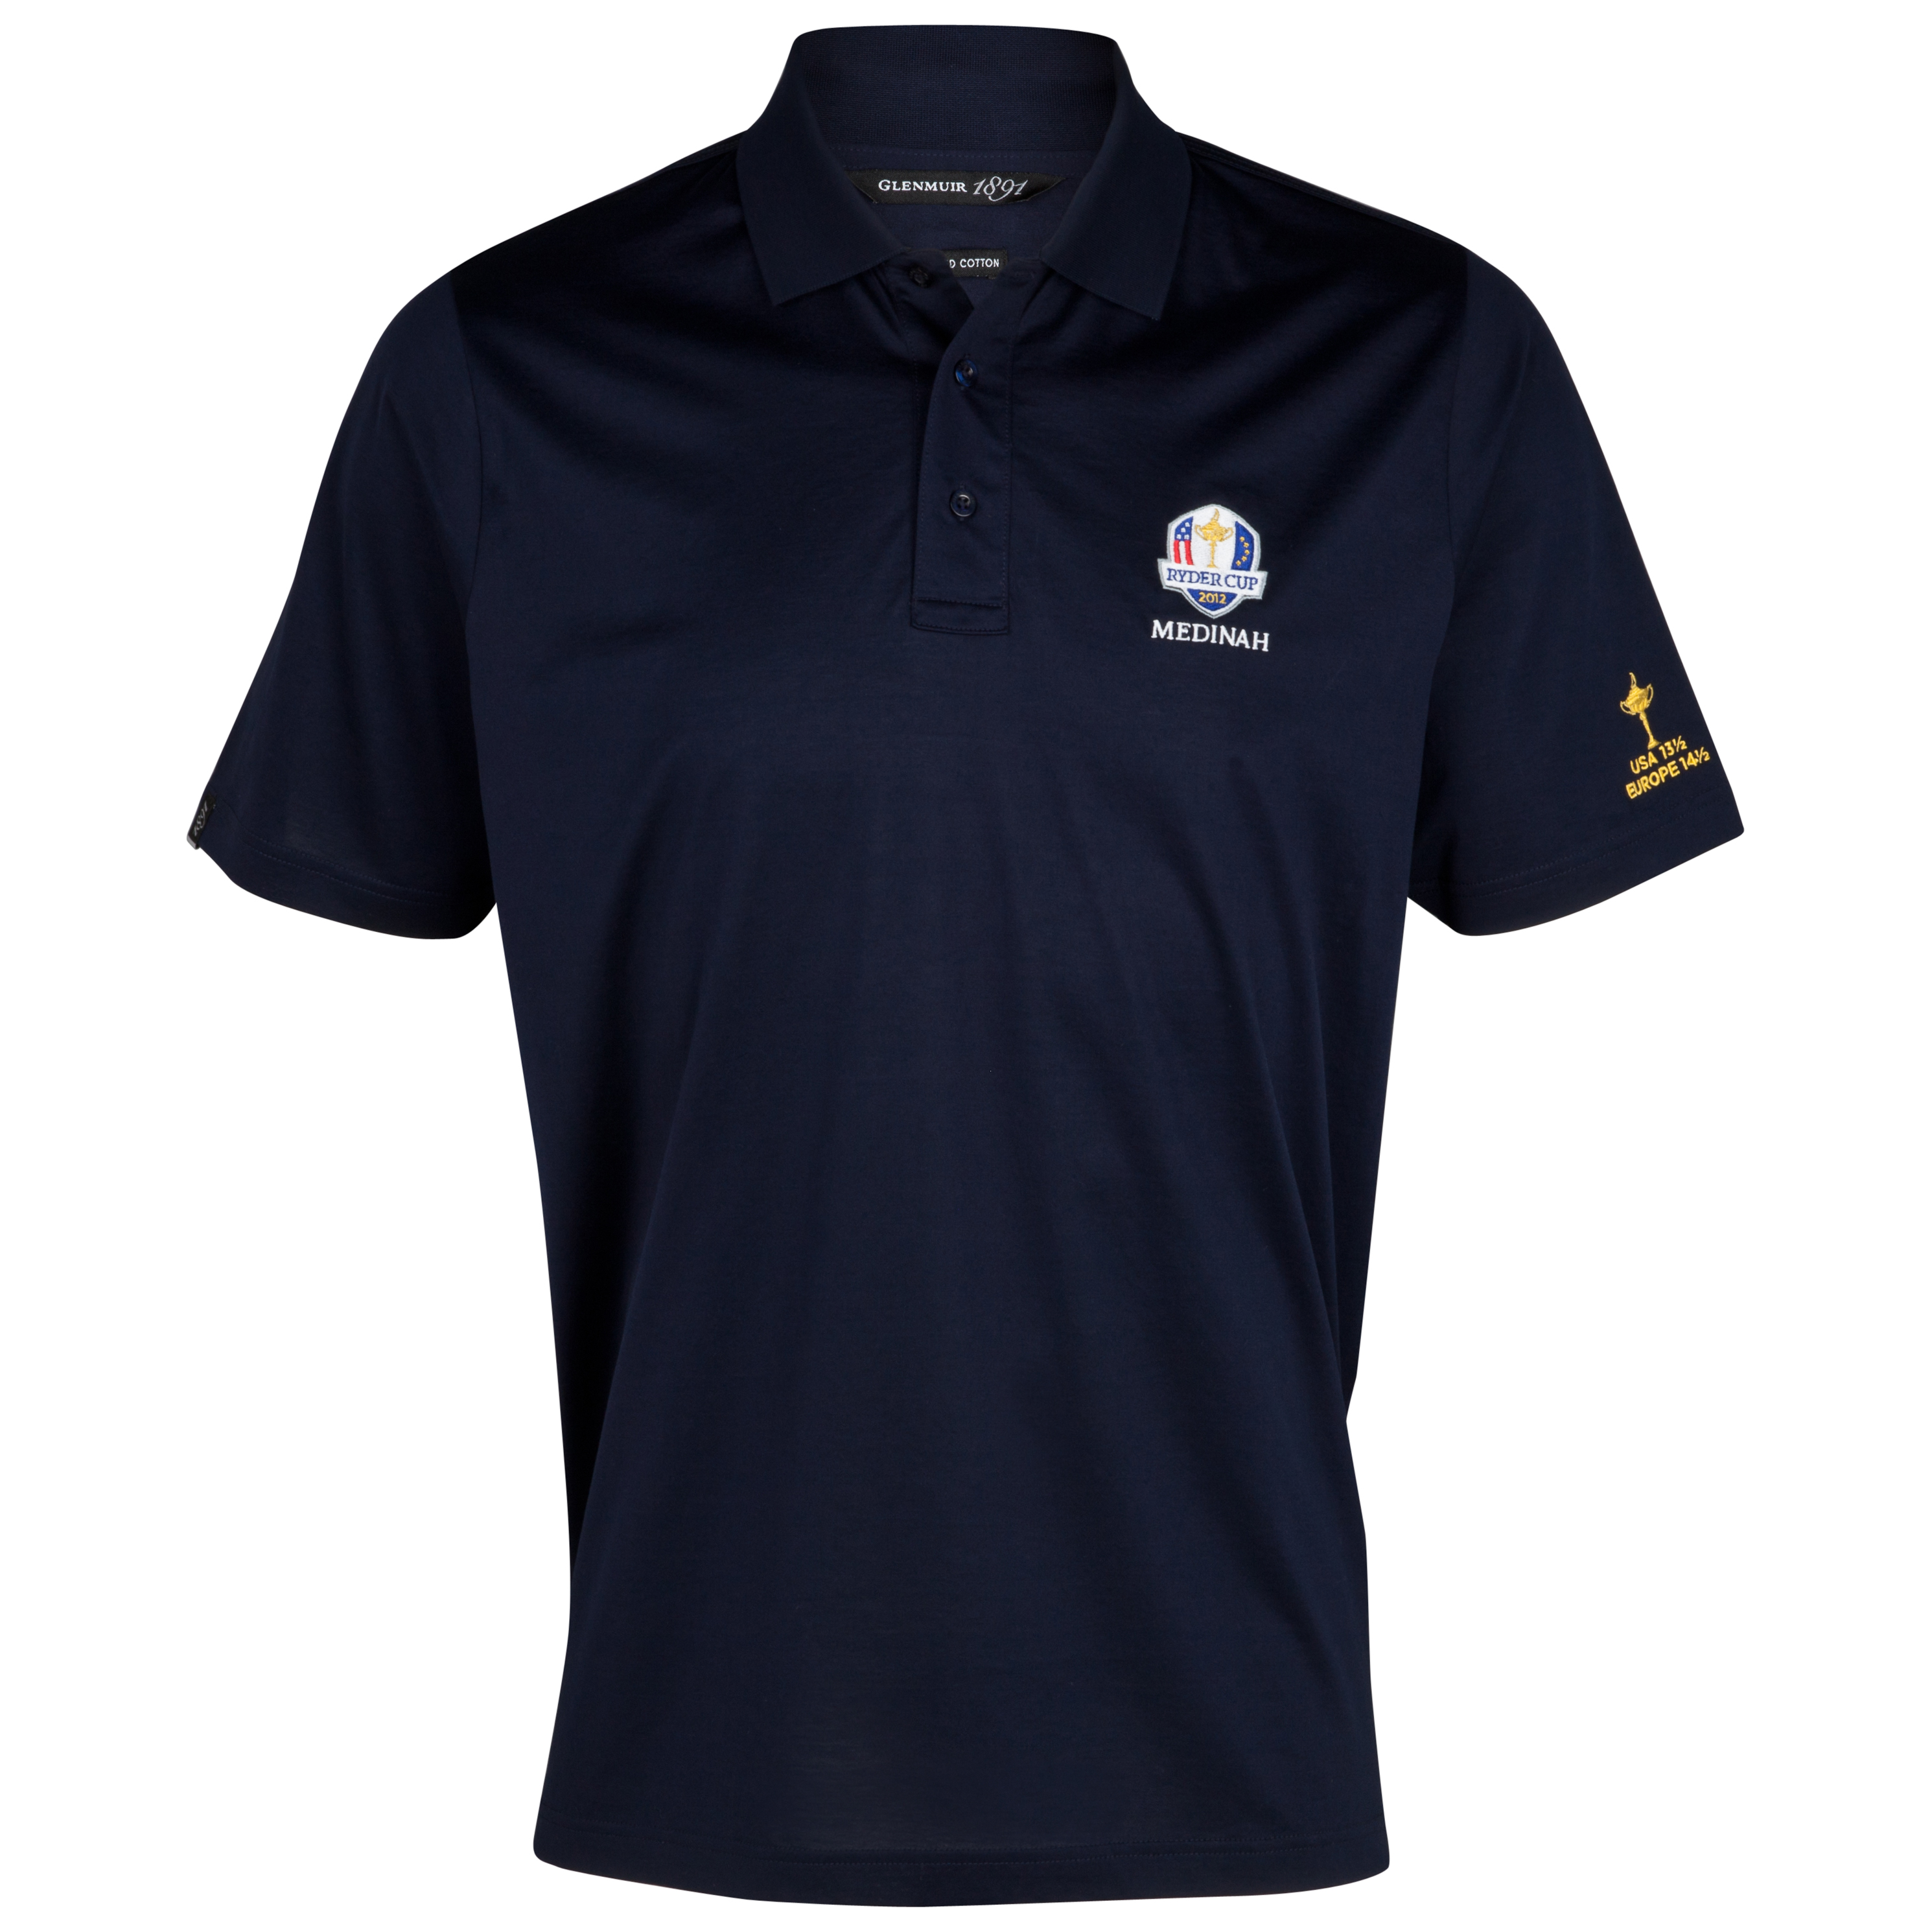 The 2014 Ryder Cup Glenmuir Howth Commemorative Winners Polo - Navy